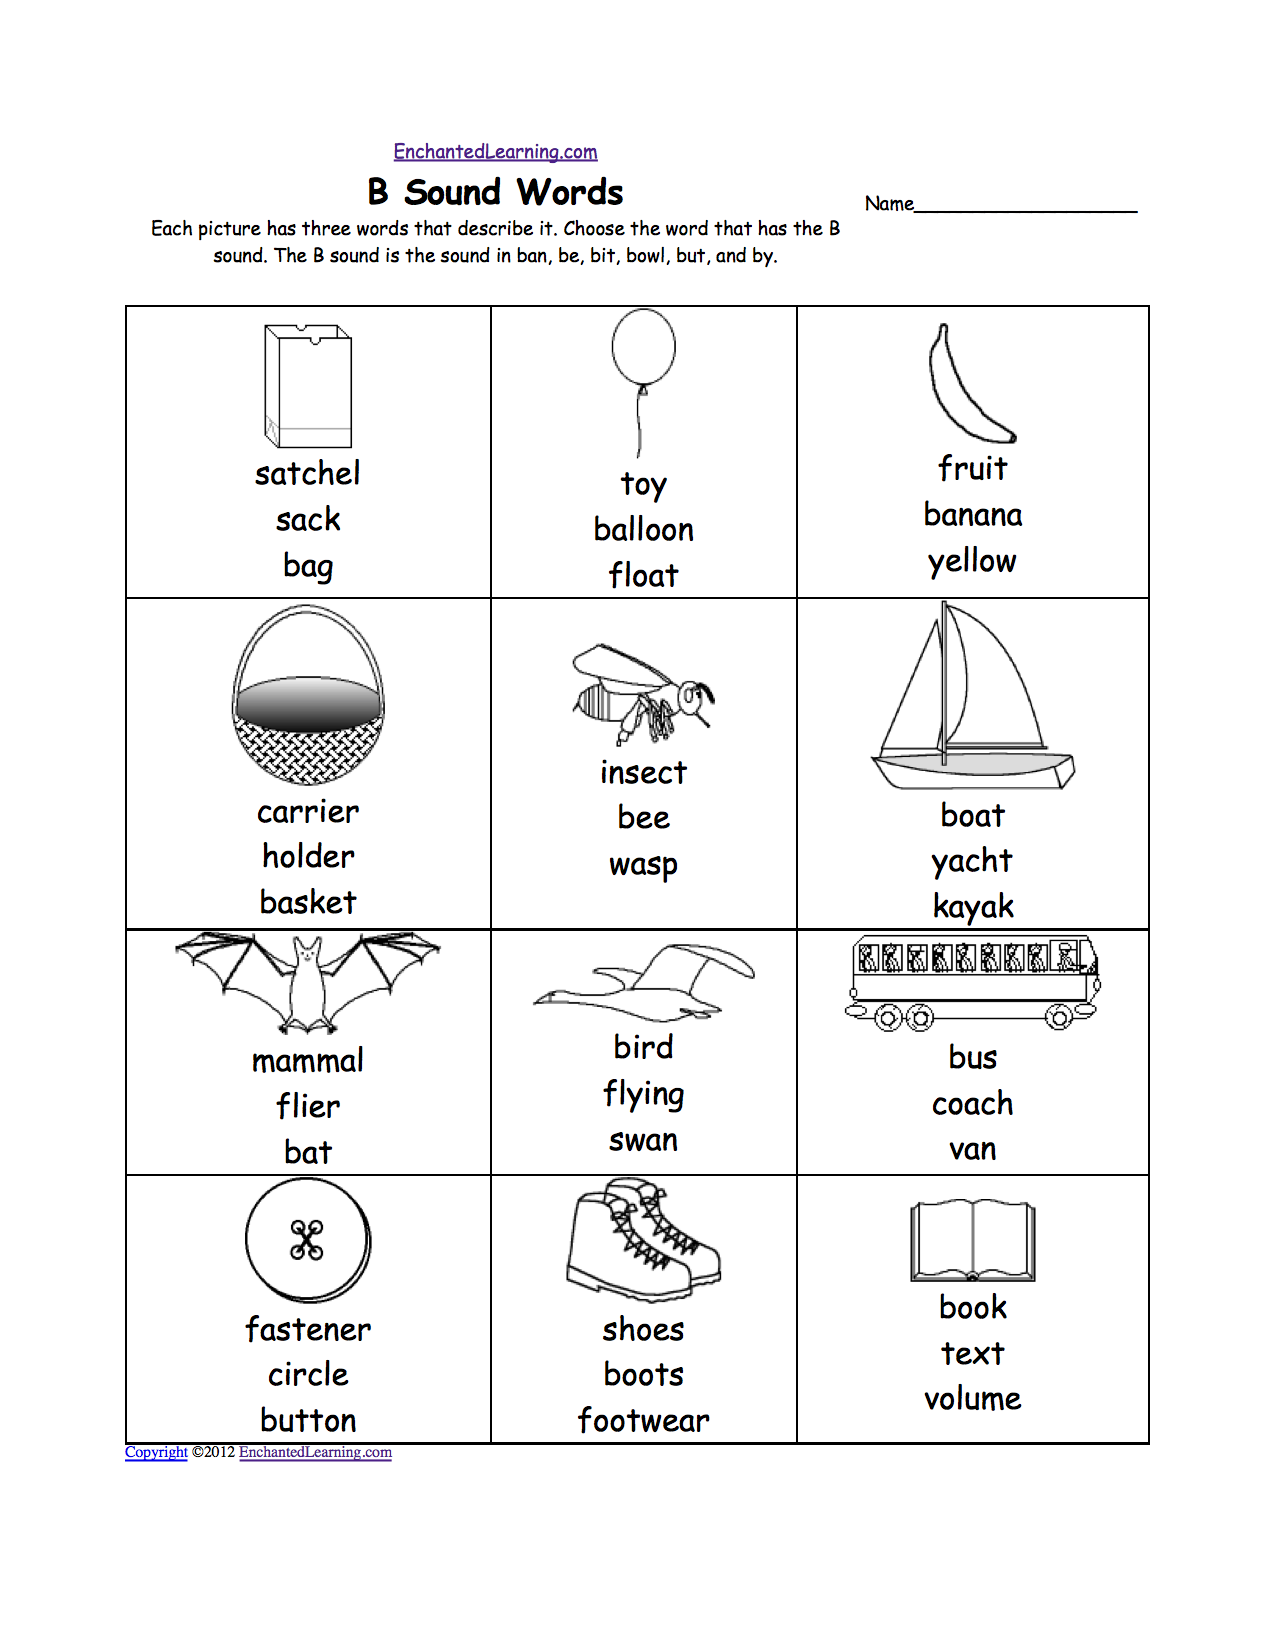 Aldiablosus  Personable Phonics Worksheets Multiple Choice Worksheets To Print  With Glamorous Quotbquot Sound Phonics Worksheet Multiple Choice Each Picture Has Three Words That Describe It Choose The Word That Has A Quotbquot Sound The Quotbquot Sound Is The Sound  With Alluring Cell Communication Worksheet Also Matching Numbers Worksheets In Addition Monthly Budget Worksheet Printable Free And Topic Sentence And Supporting Details Worksheet As Well As Is It Rational Worksheet Additionally Global History Worksheets From Enchantedlearningcom With Aldiablosus  Glamorous Phonics Worksheets Multiple Choice Worksheets To Print  With Alluring Quotbquot Sound Phonics Worksheet Multiple Choice Each Picture Has Three Words That Describe It Choose The Word That Has A Quotbquot Sound The Quotbquot Sound Is The Sound  And Personable Cell Communication Worksheet Also Matching Numbers Worksheets In Addition Monthly Budget Worksheet Printable Free From Enchantedlearningcom